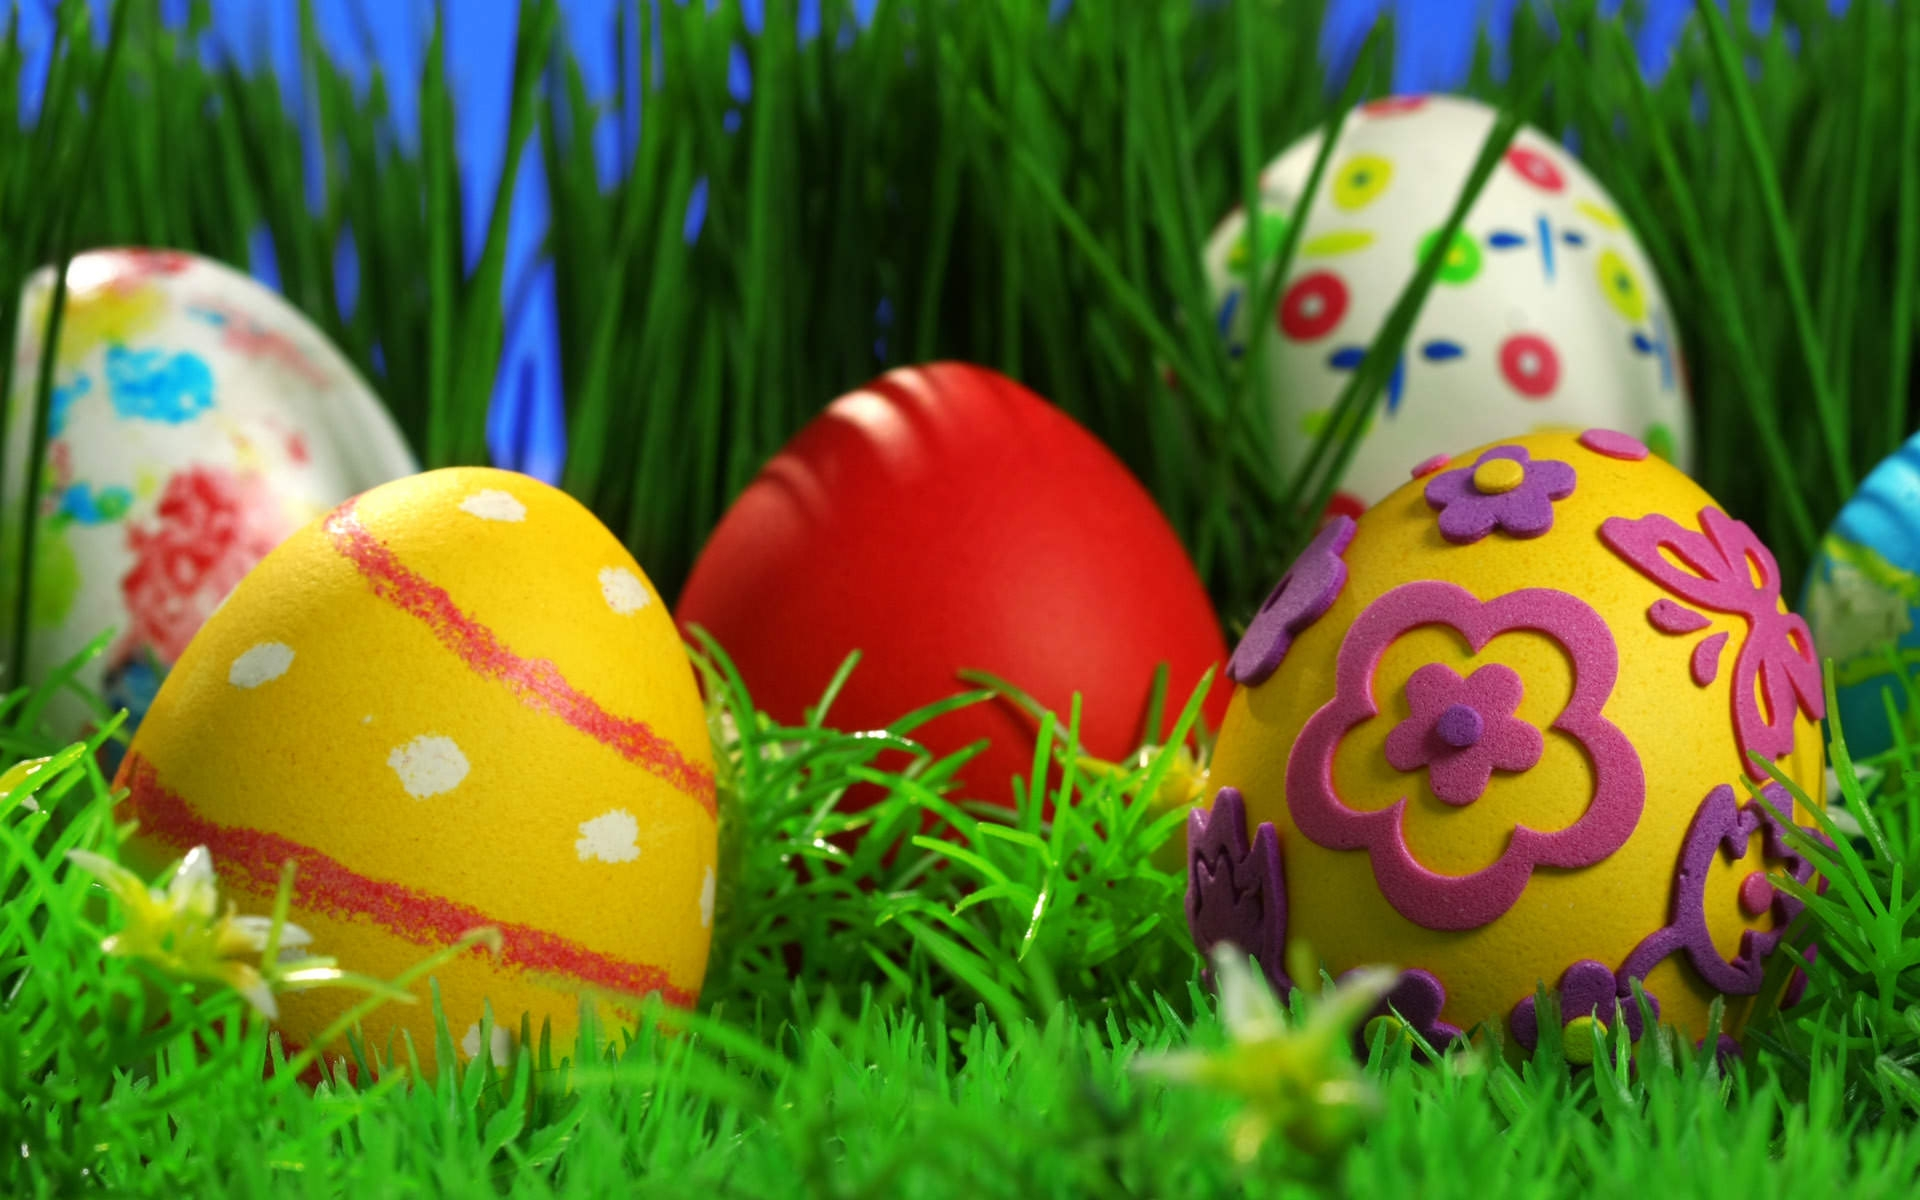 Happy-Easter-day-Backgrounds-15